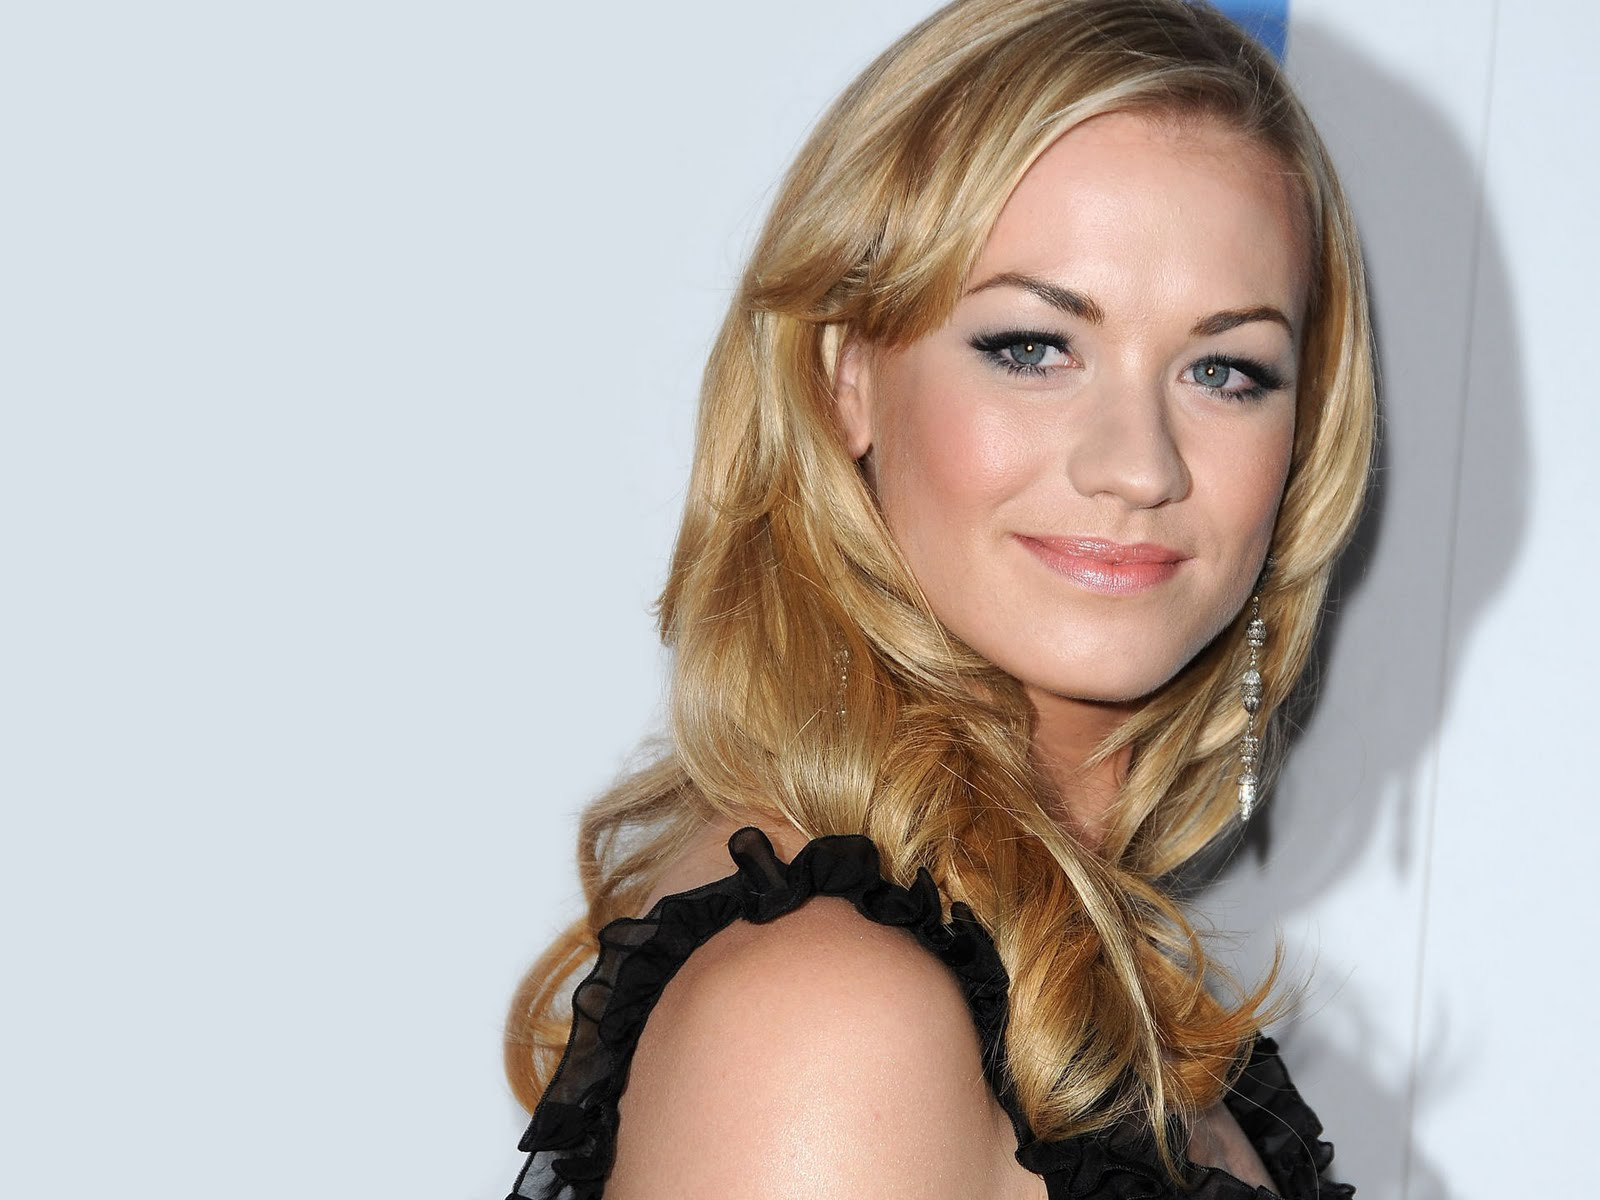 HD Wallpapers Yvonne Strahovski 1600x1200